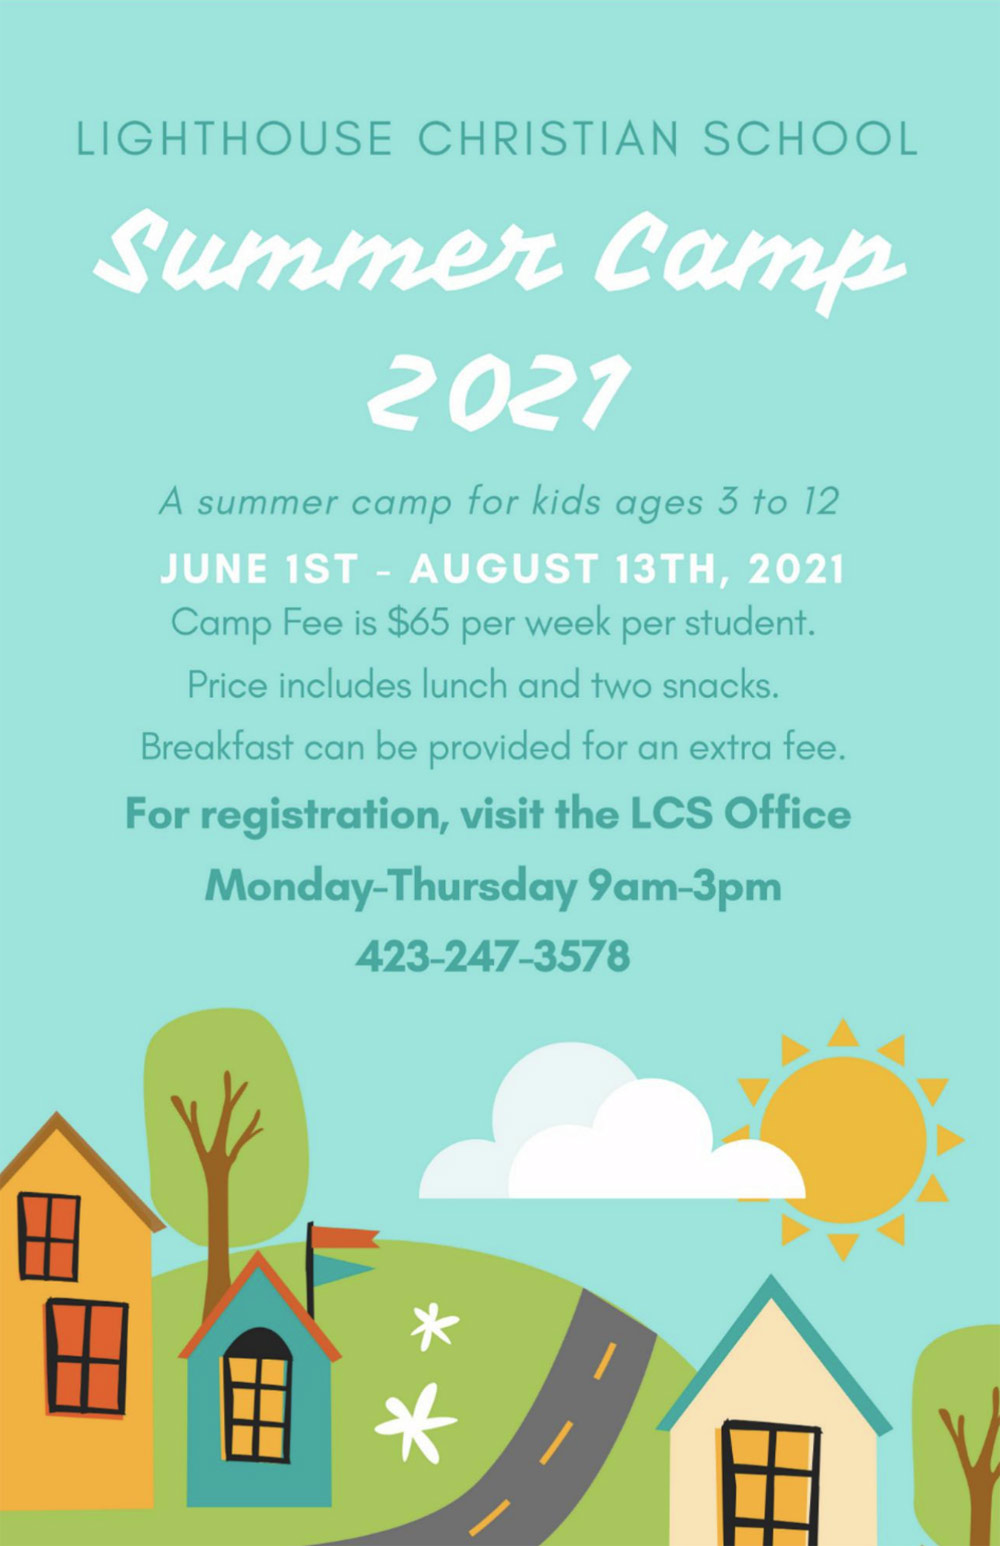 LCS_Summer_Camp_2021_flyer